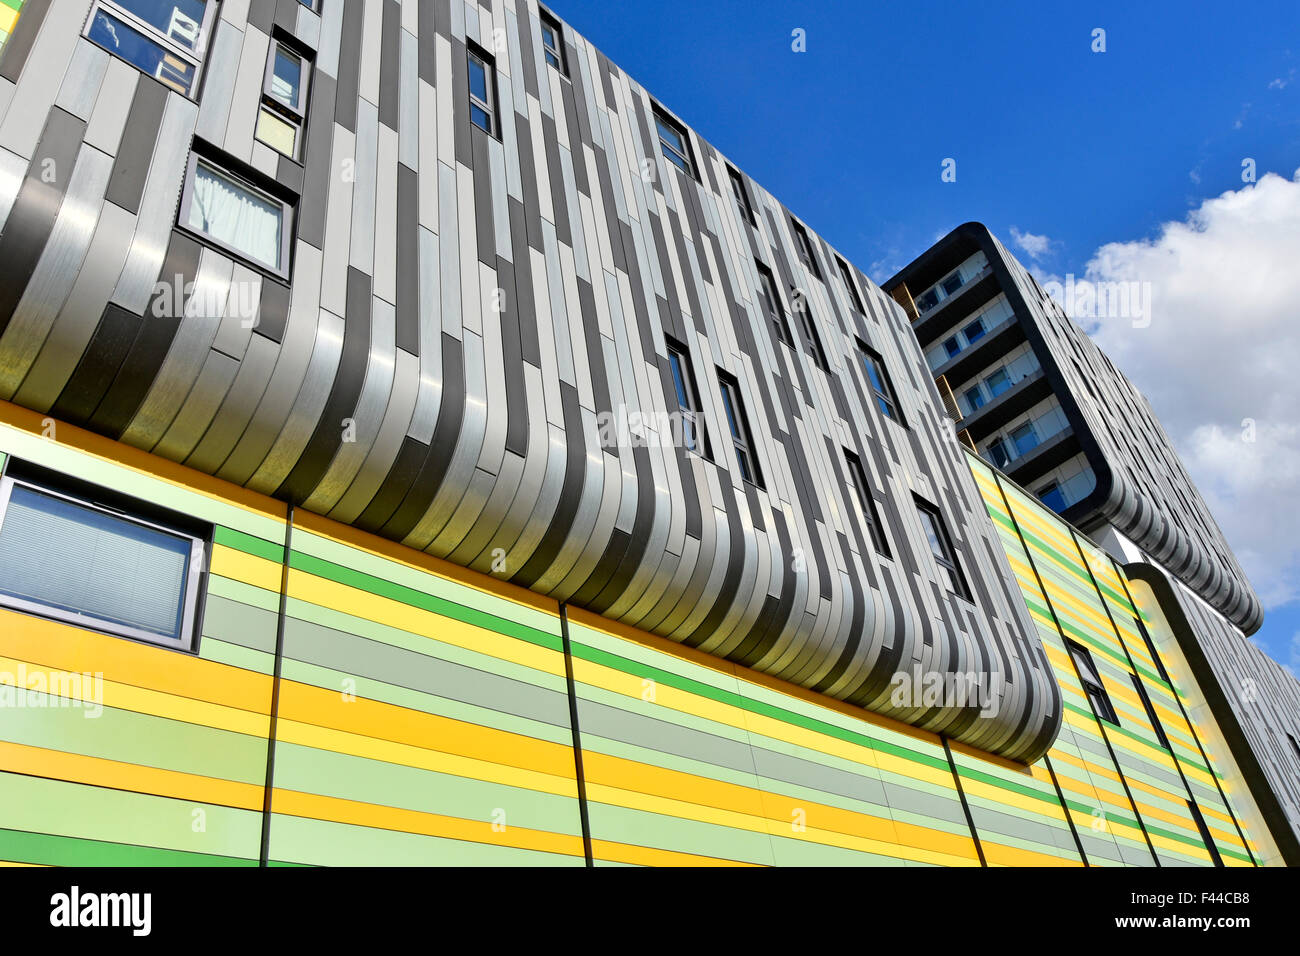 Woolwich Central South London England UK shades of grey & colours used in striped cladding exterior of modern - Stock Image